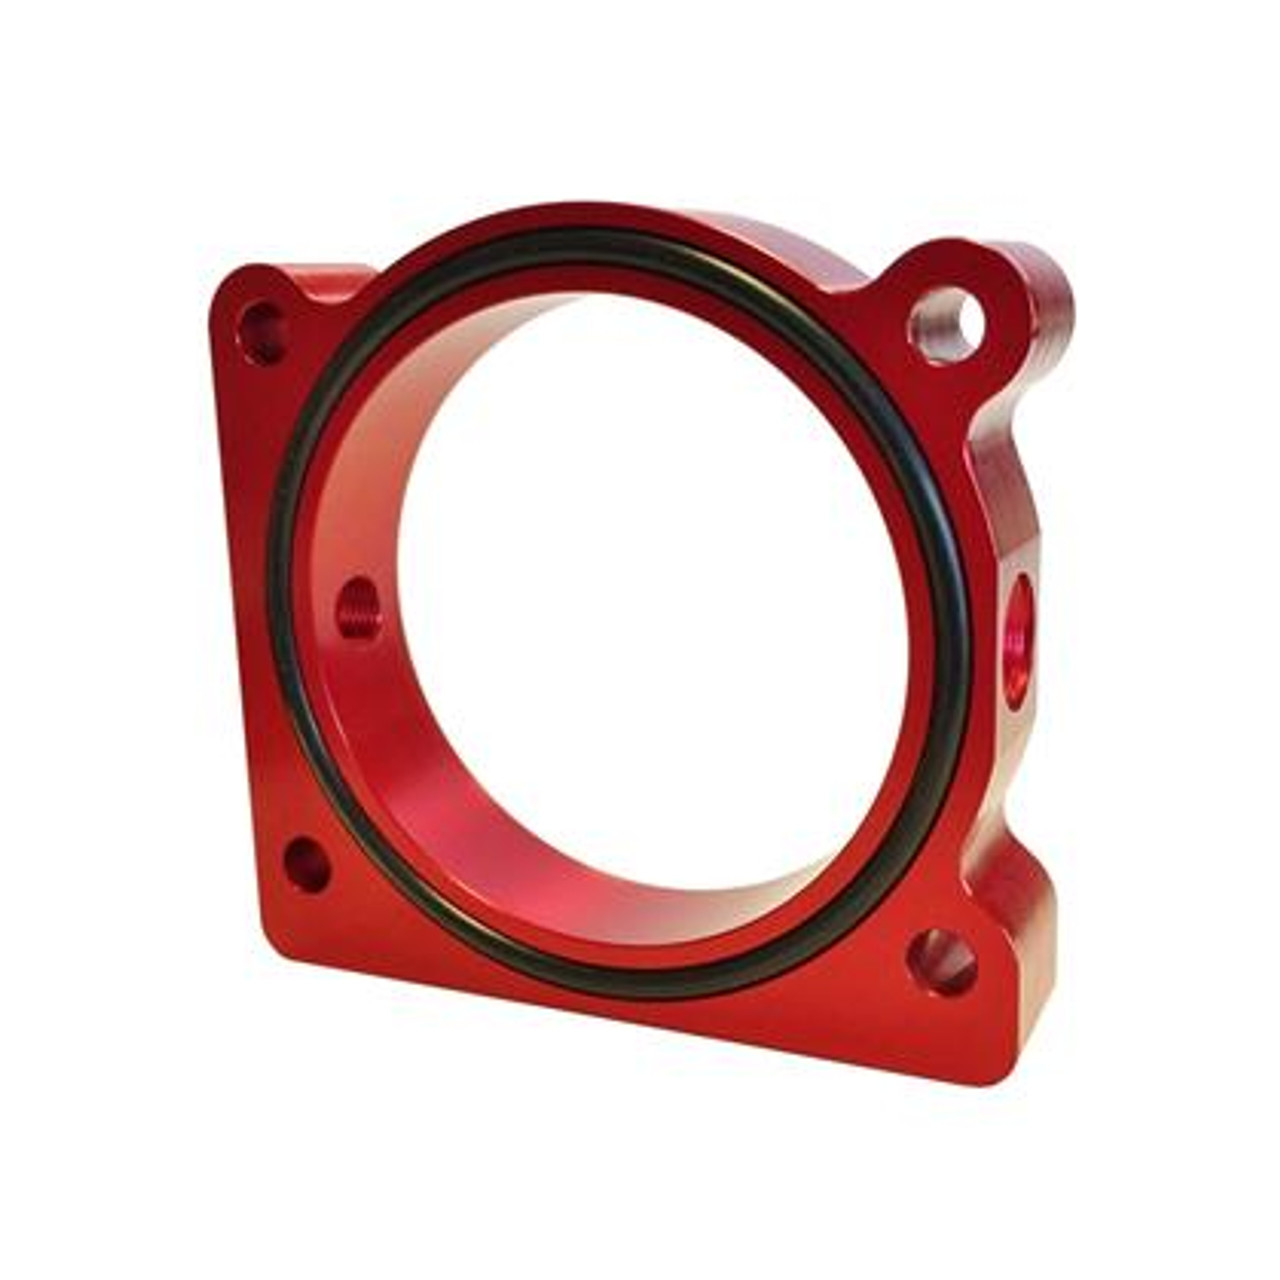 Throttle Body Spacer Black Fits Ford Focus ST 2013 by Torque Solution